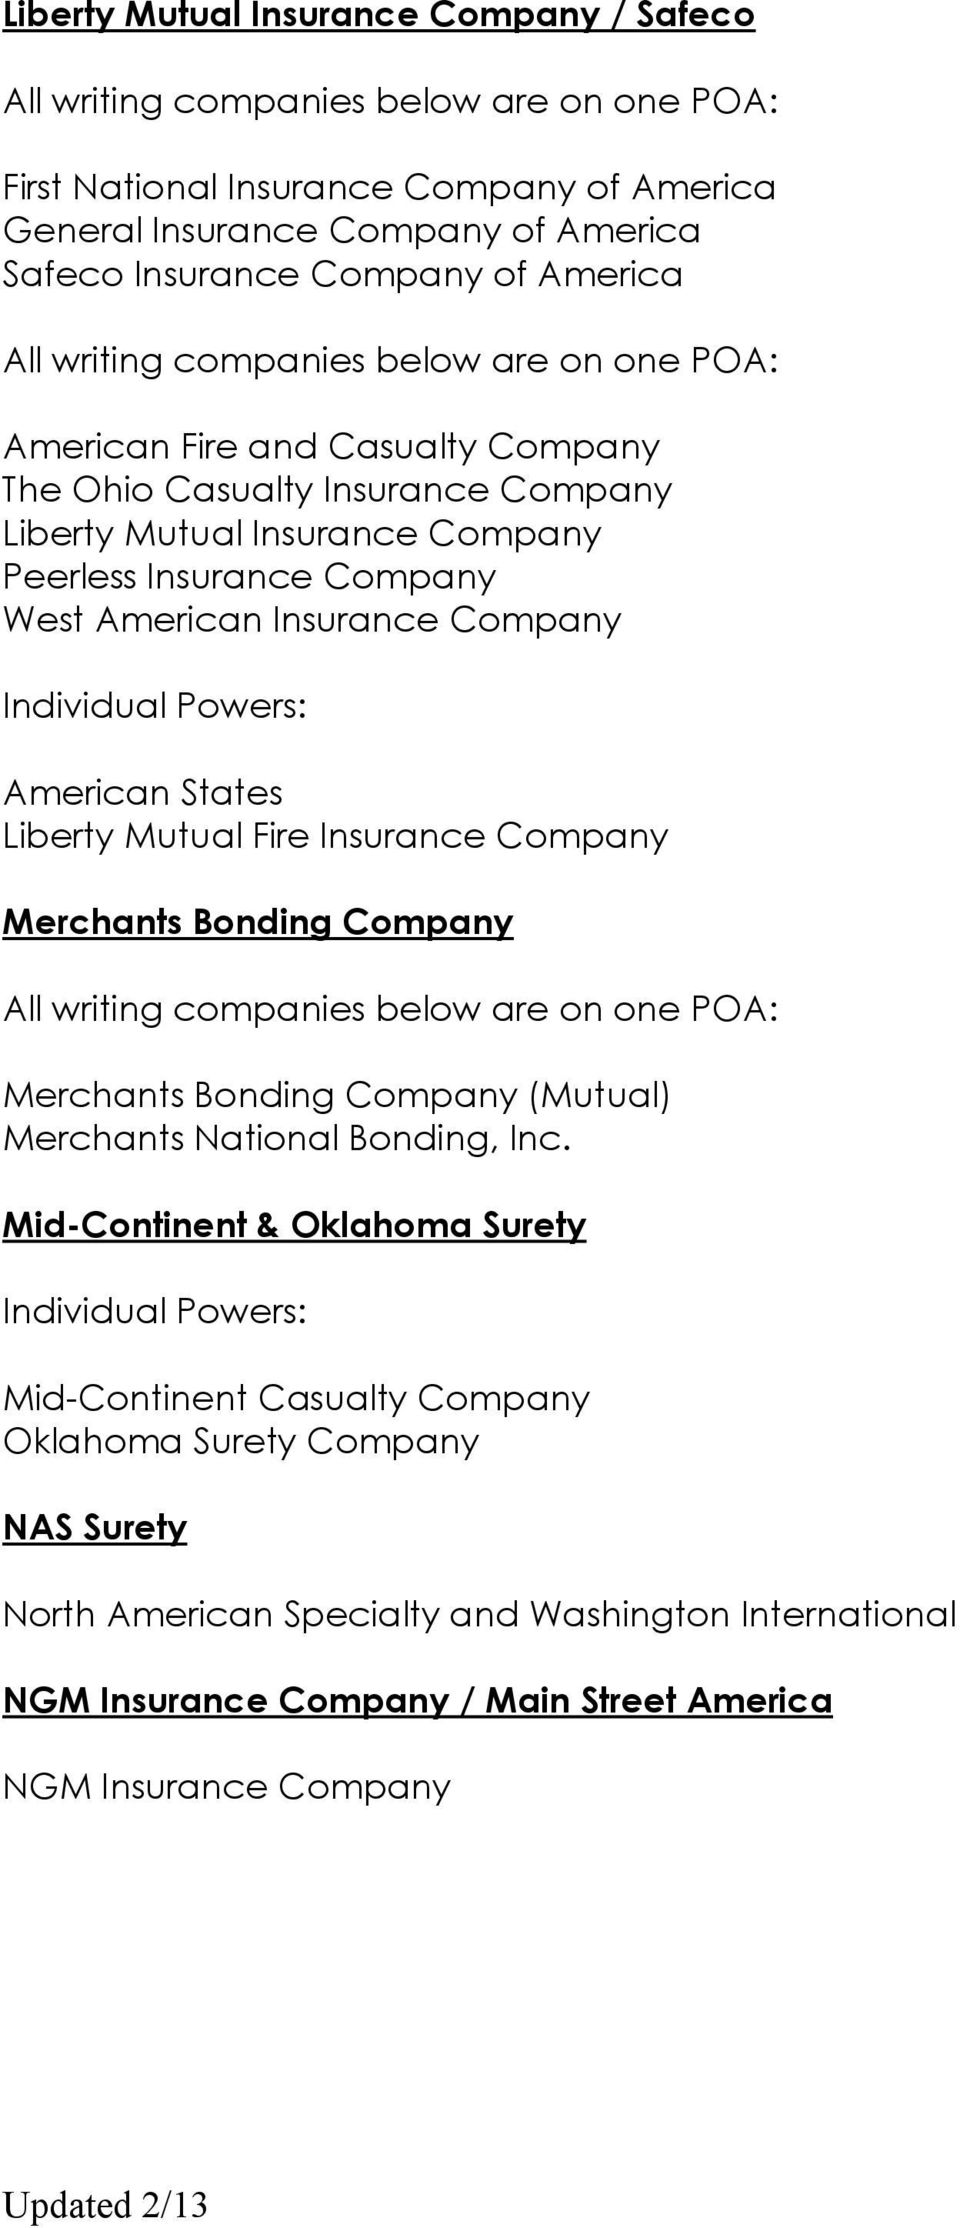 Liberty Mutual Fire Insurance Company Merchants Bonding Company Merchants Bonding Company (Mutual) Merchants National Bonding, Inc.